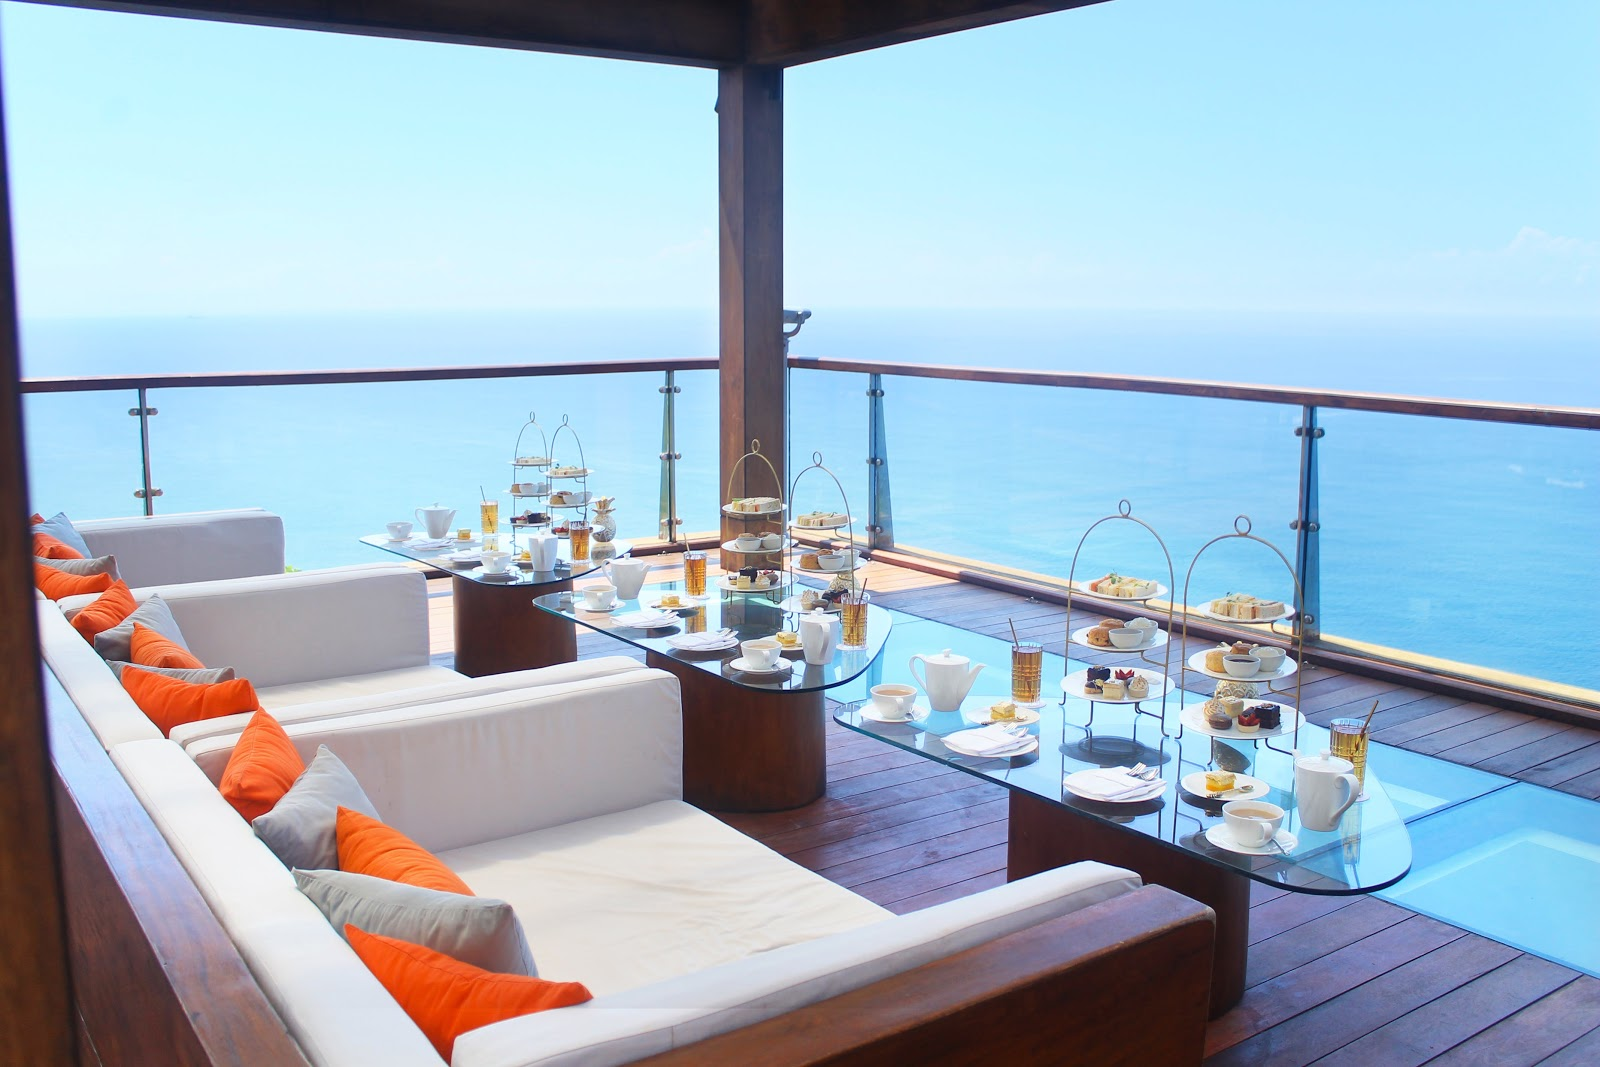 three tables of afternoon tea at a restaurant that overlooks the ocean